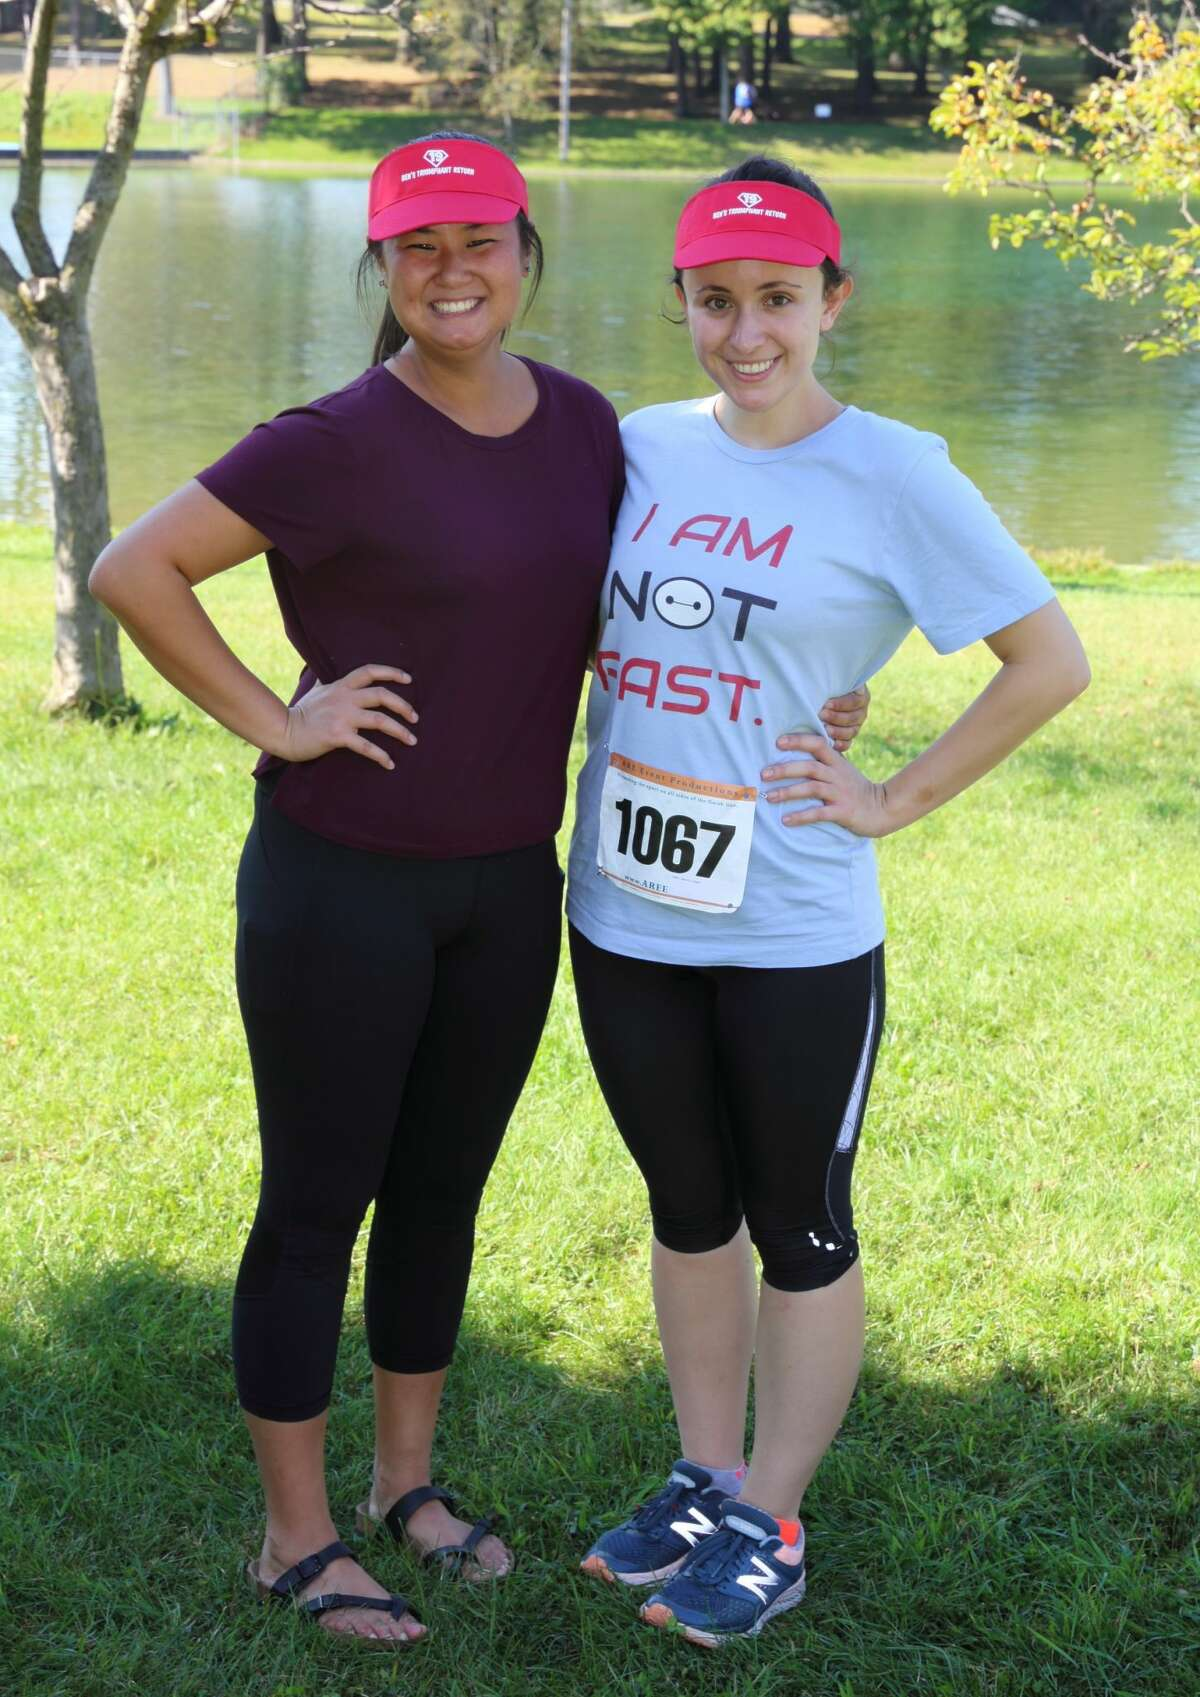 Were you Seen at the 14th Annual Walk & 5K Run for Autism, sponsored by the Autism Society of the Greater Capital Region, held in Schenectady's Central Park on Saturday, Sept. 23, 2017?